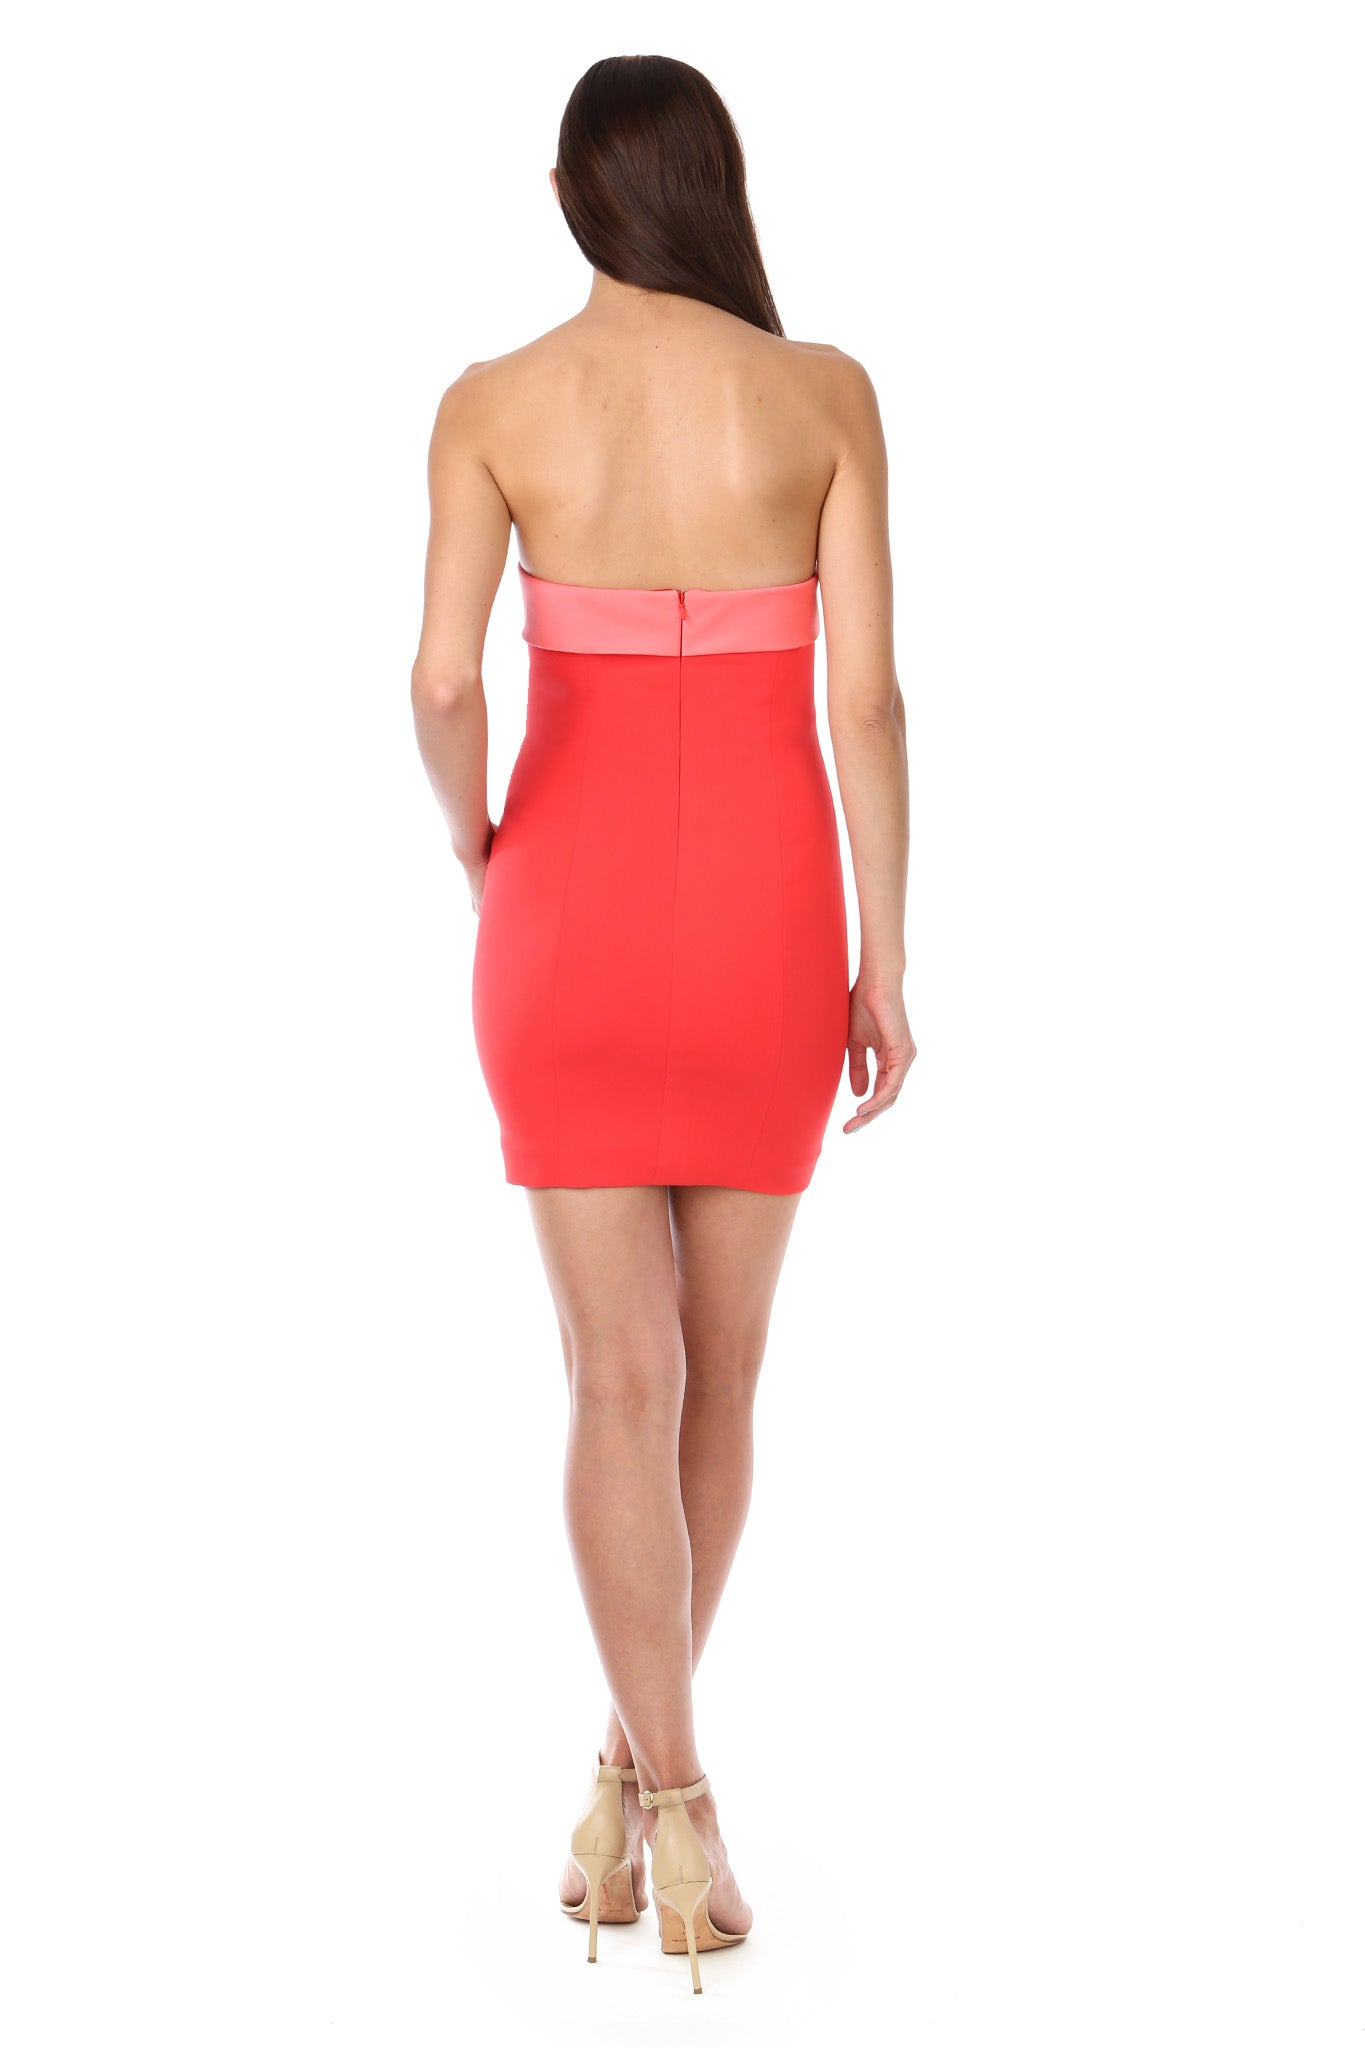 Coral Red Silky Bandeau Strapless Mini Dress - Back View